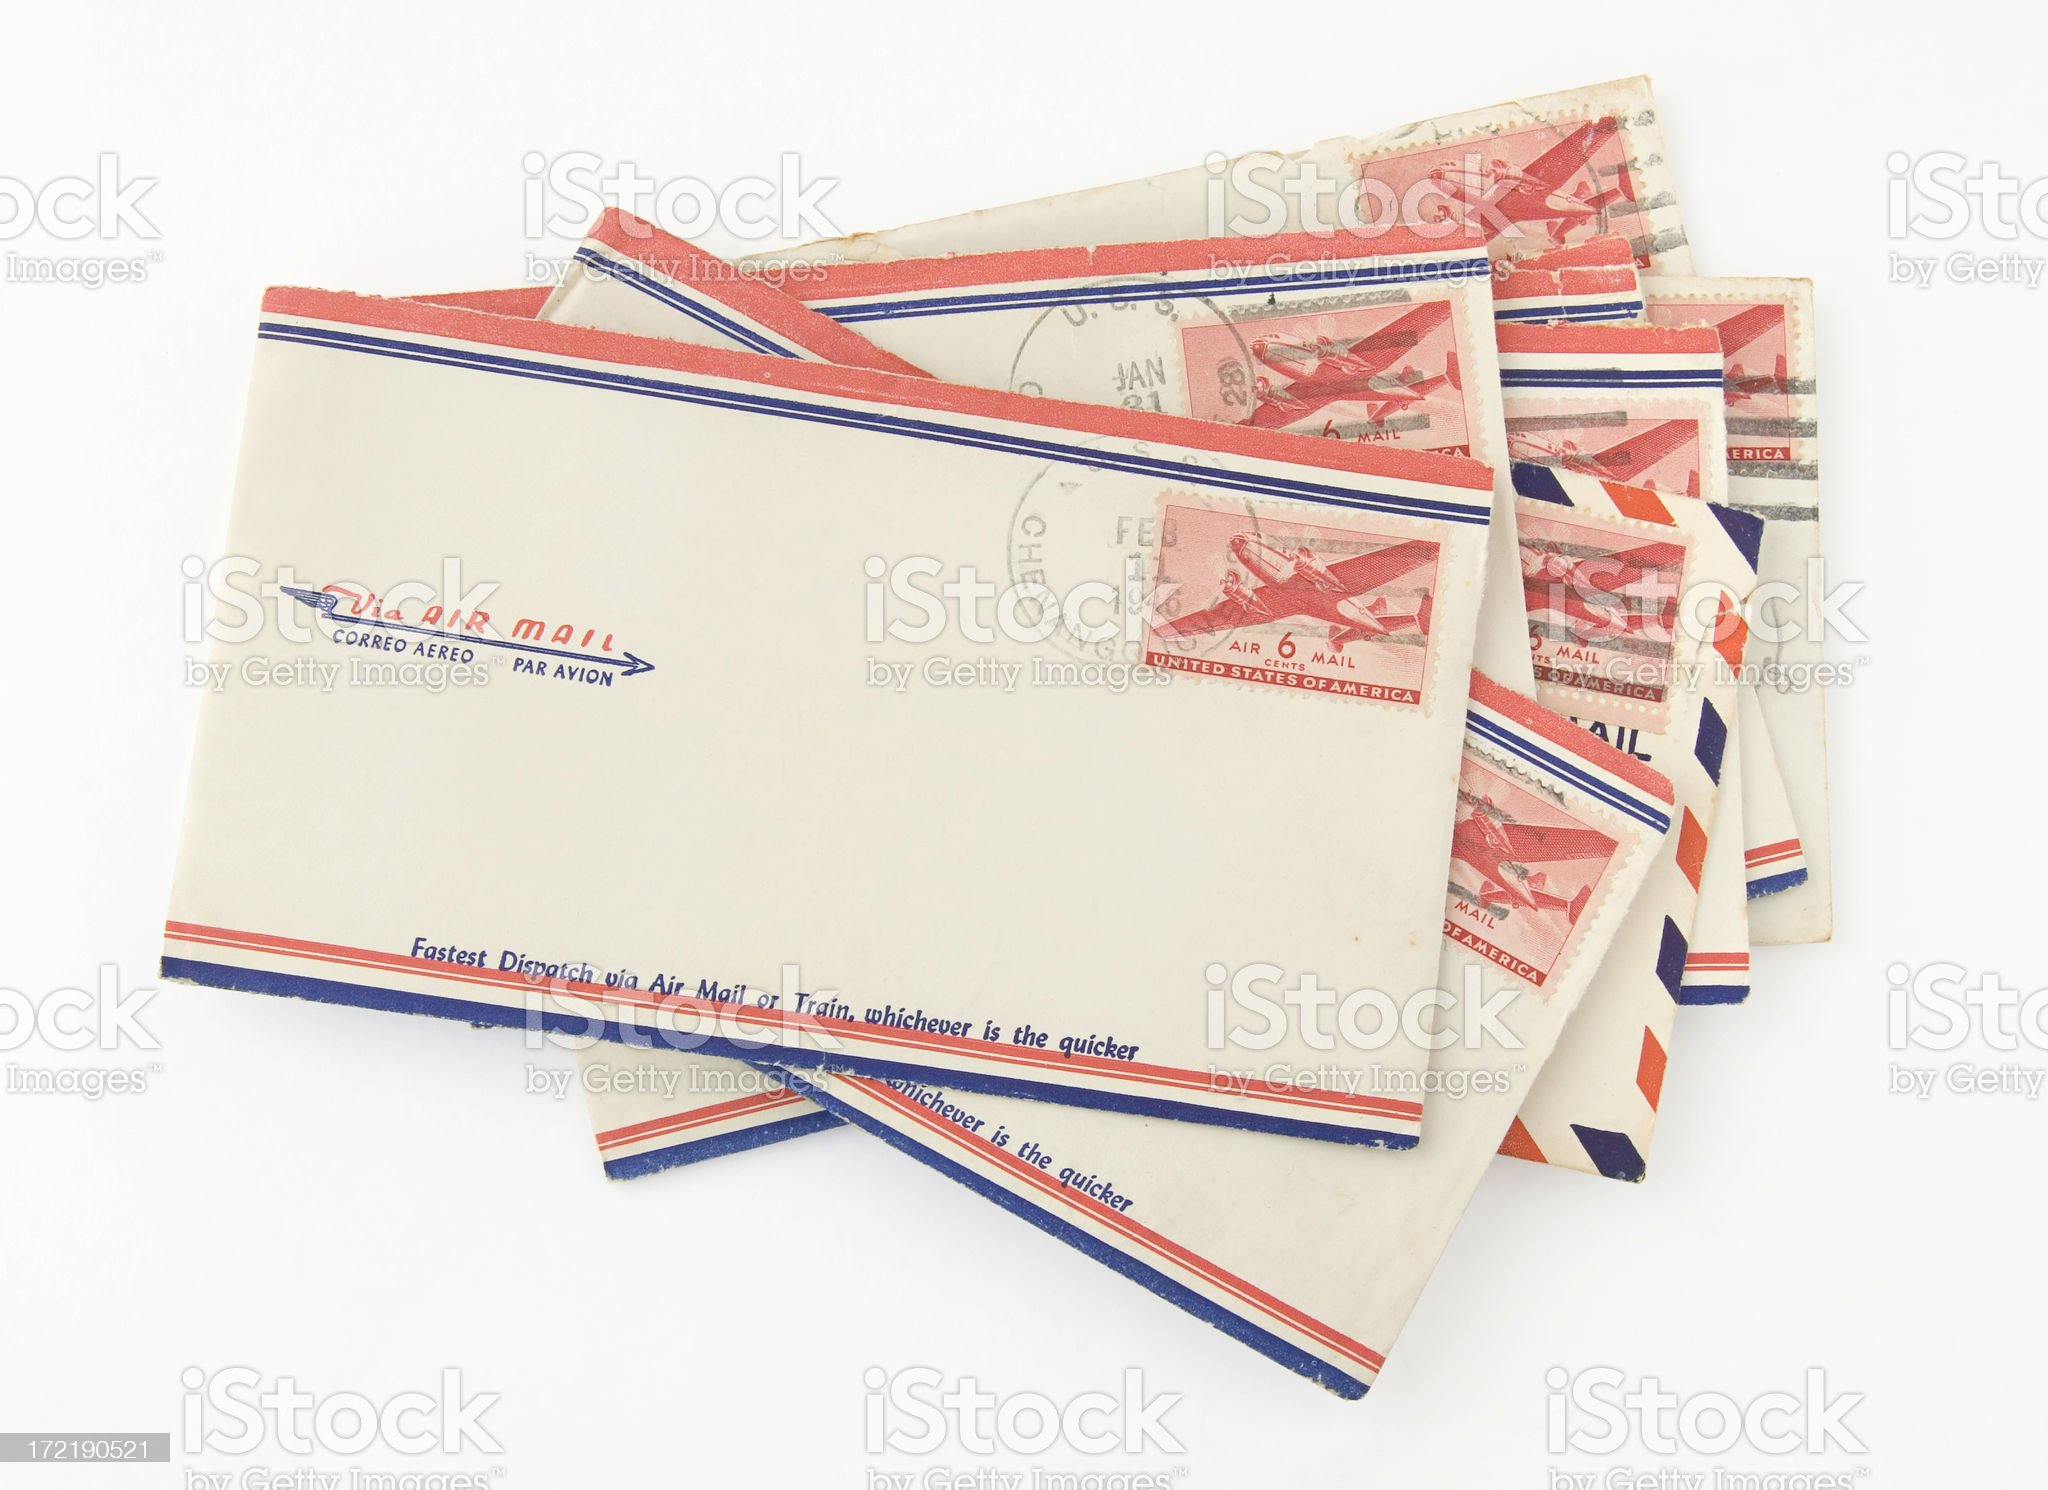 Old Air Mail Envelopes royalty-free stock photo